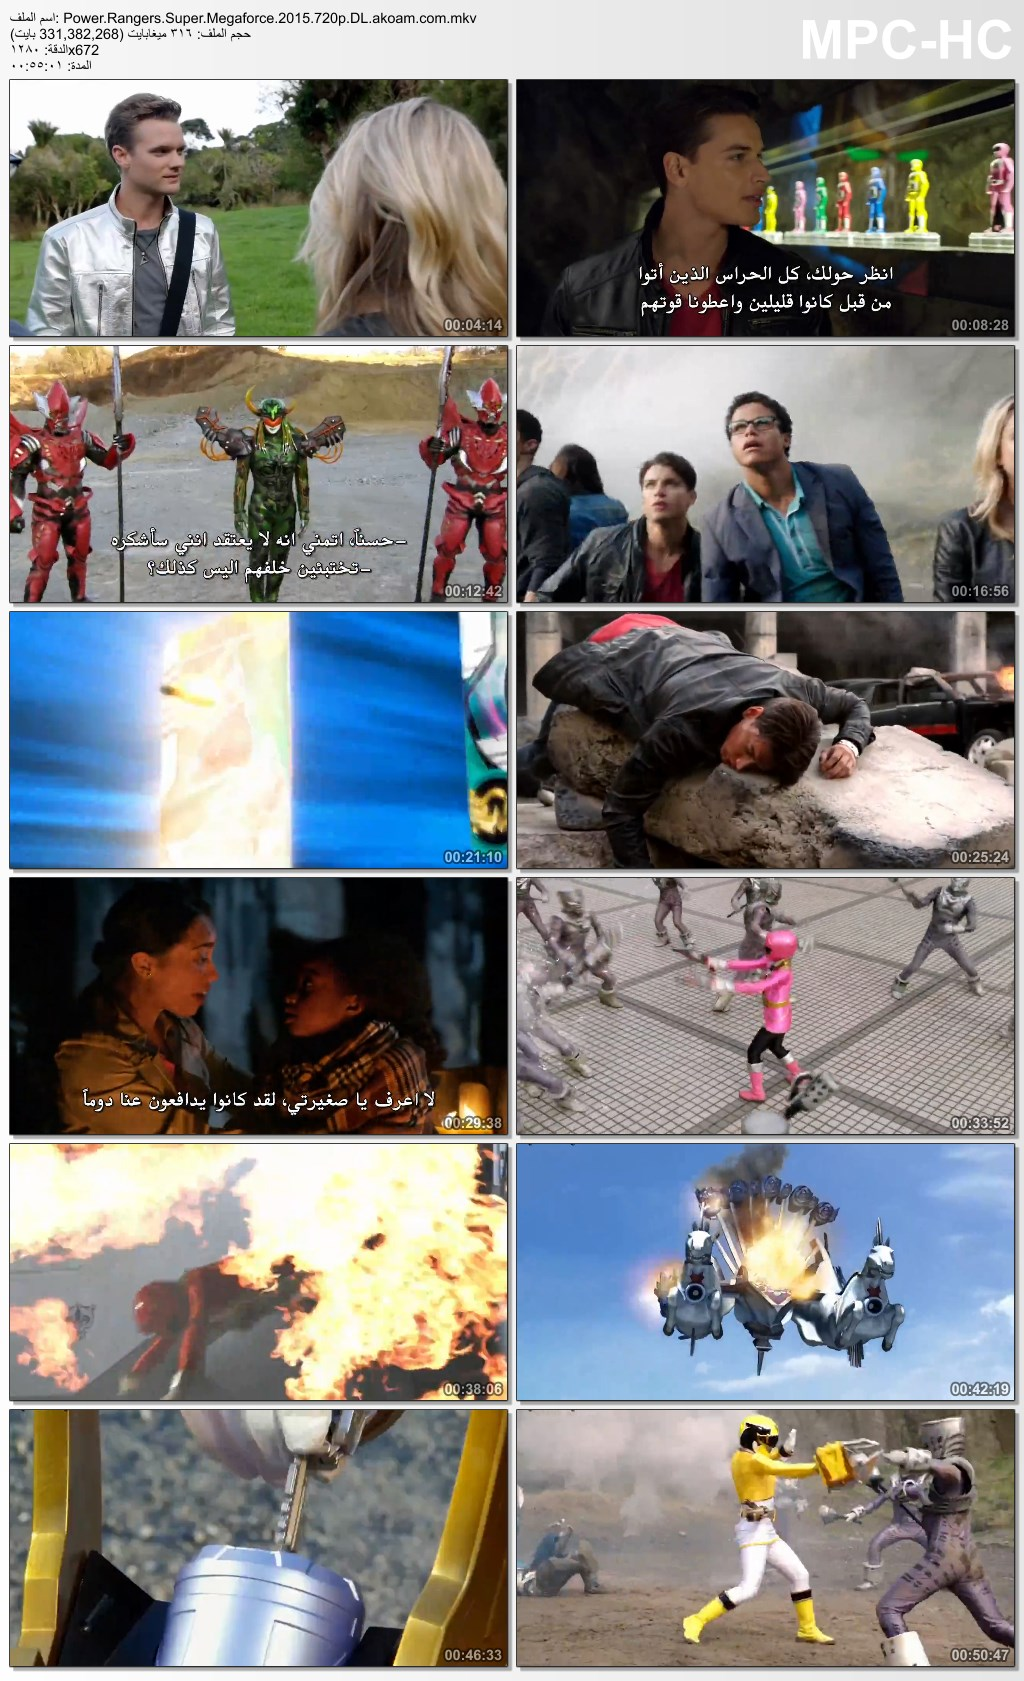 الاكشن,المغامرة,الفانتازيا,Power Rangers Super Megaforce: The Legendary Battle